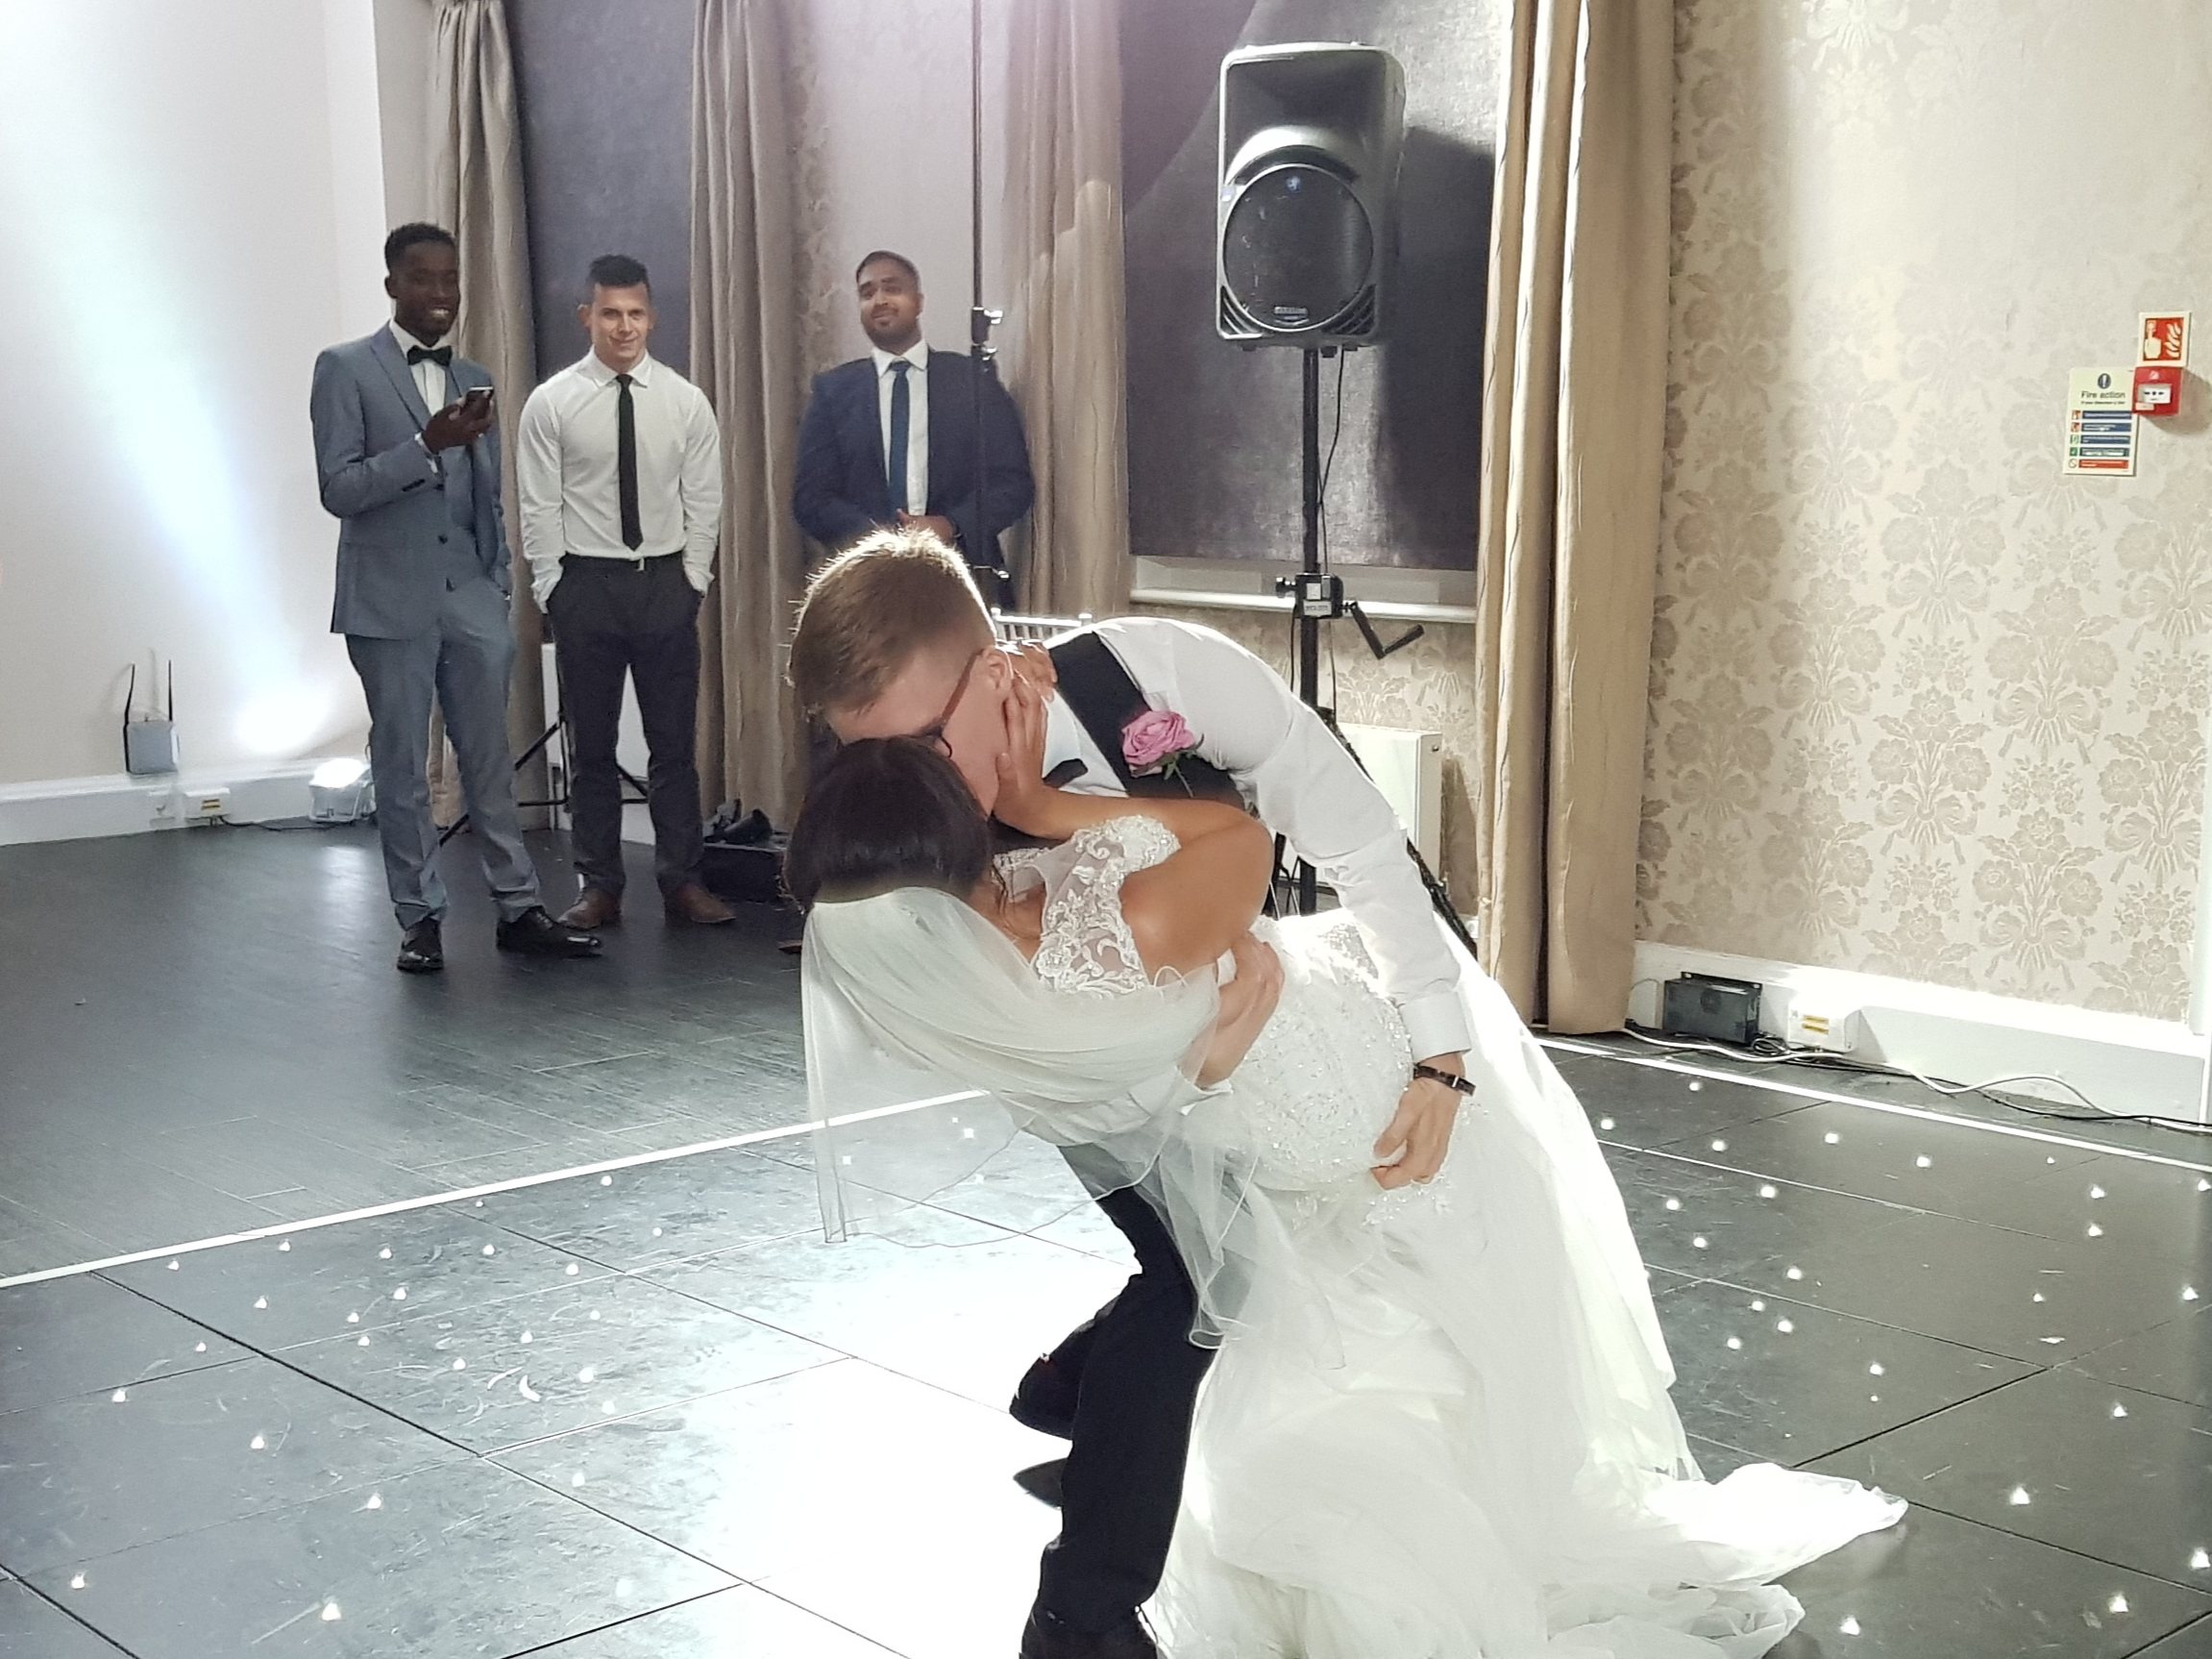 Wedding photo ideas: kissing during the first dance